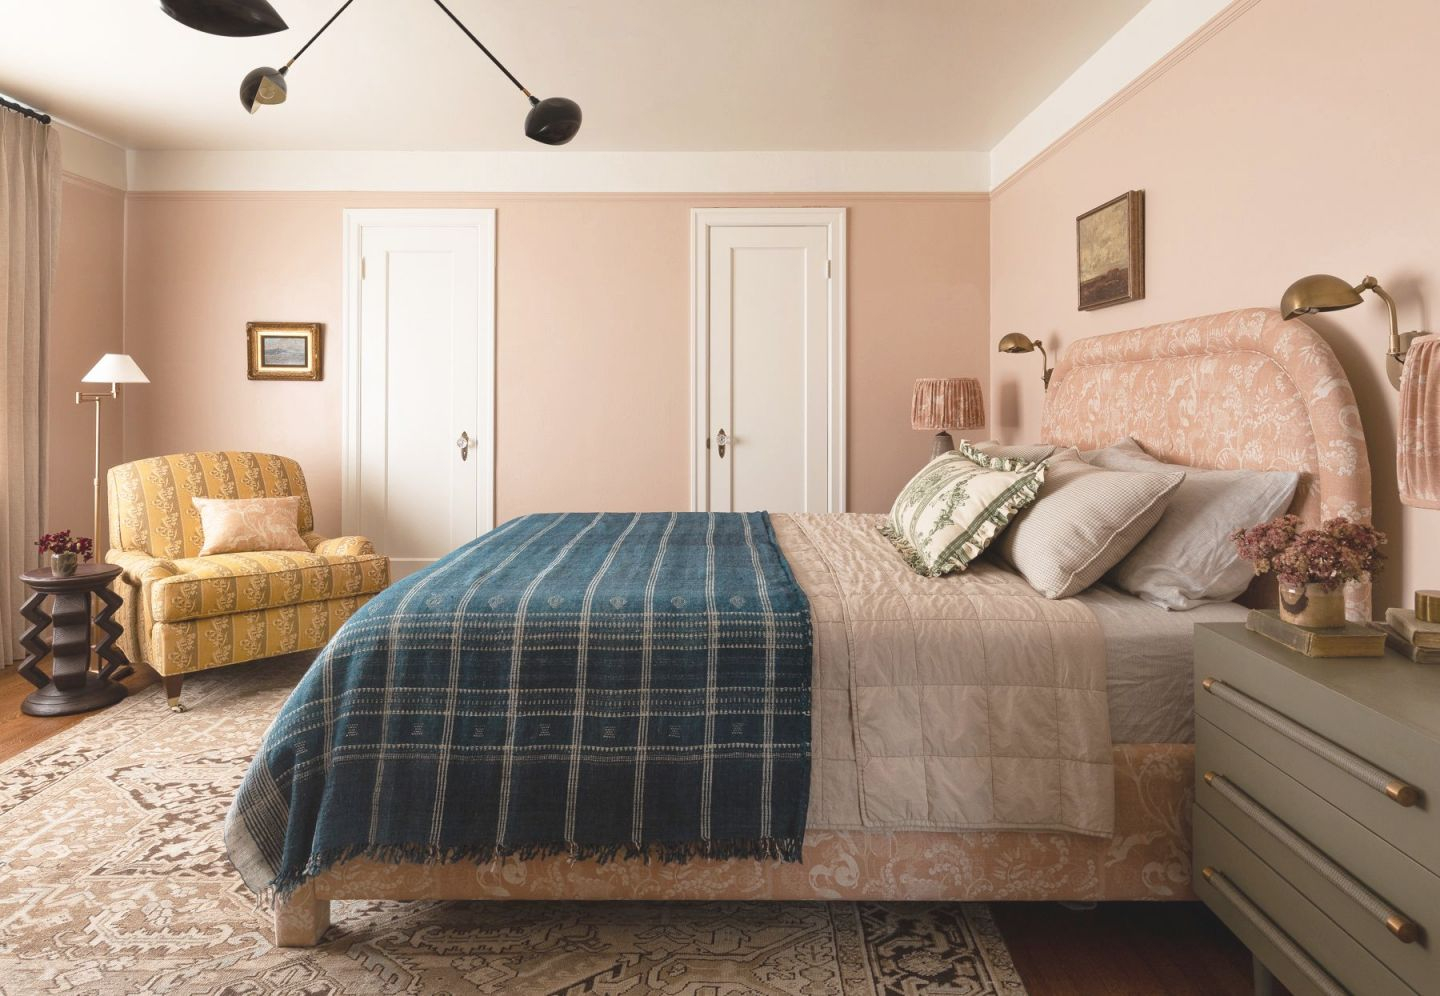 24 Best Bedroom Colors 2020 – Relaxing Paint Color Ideas For for Home Decor Ideas For Master Bedroom